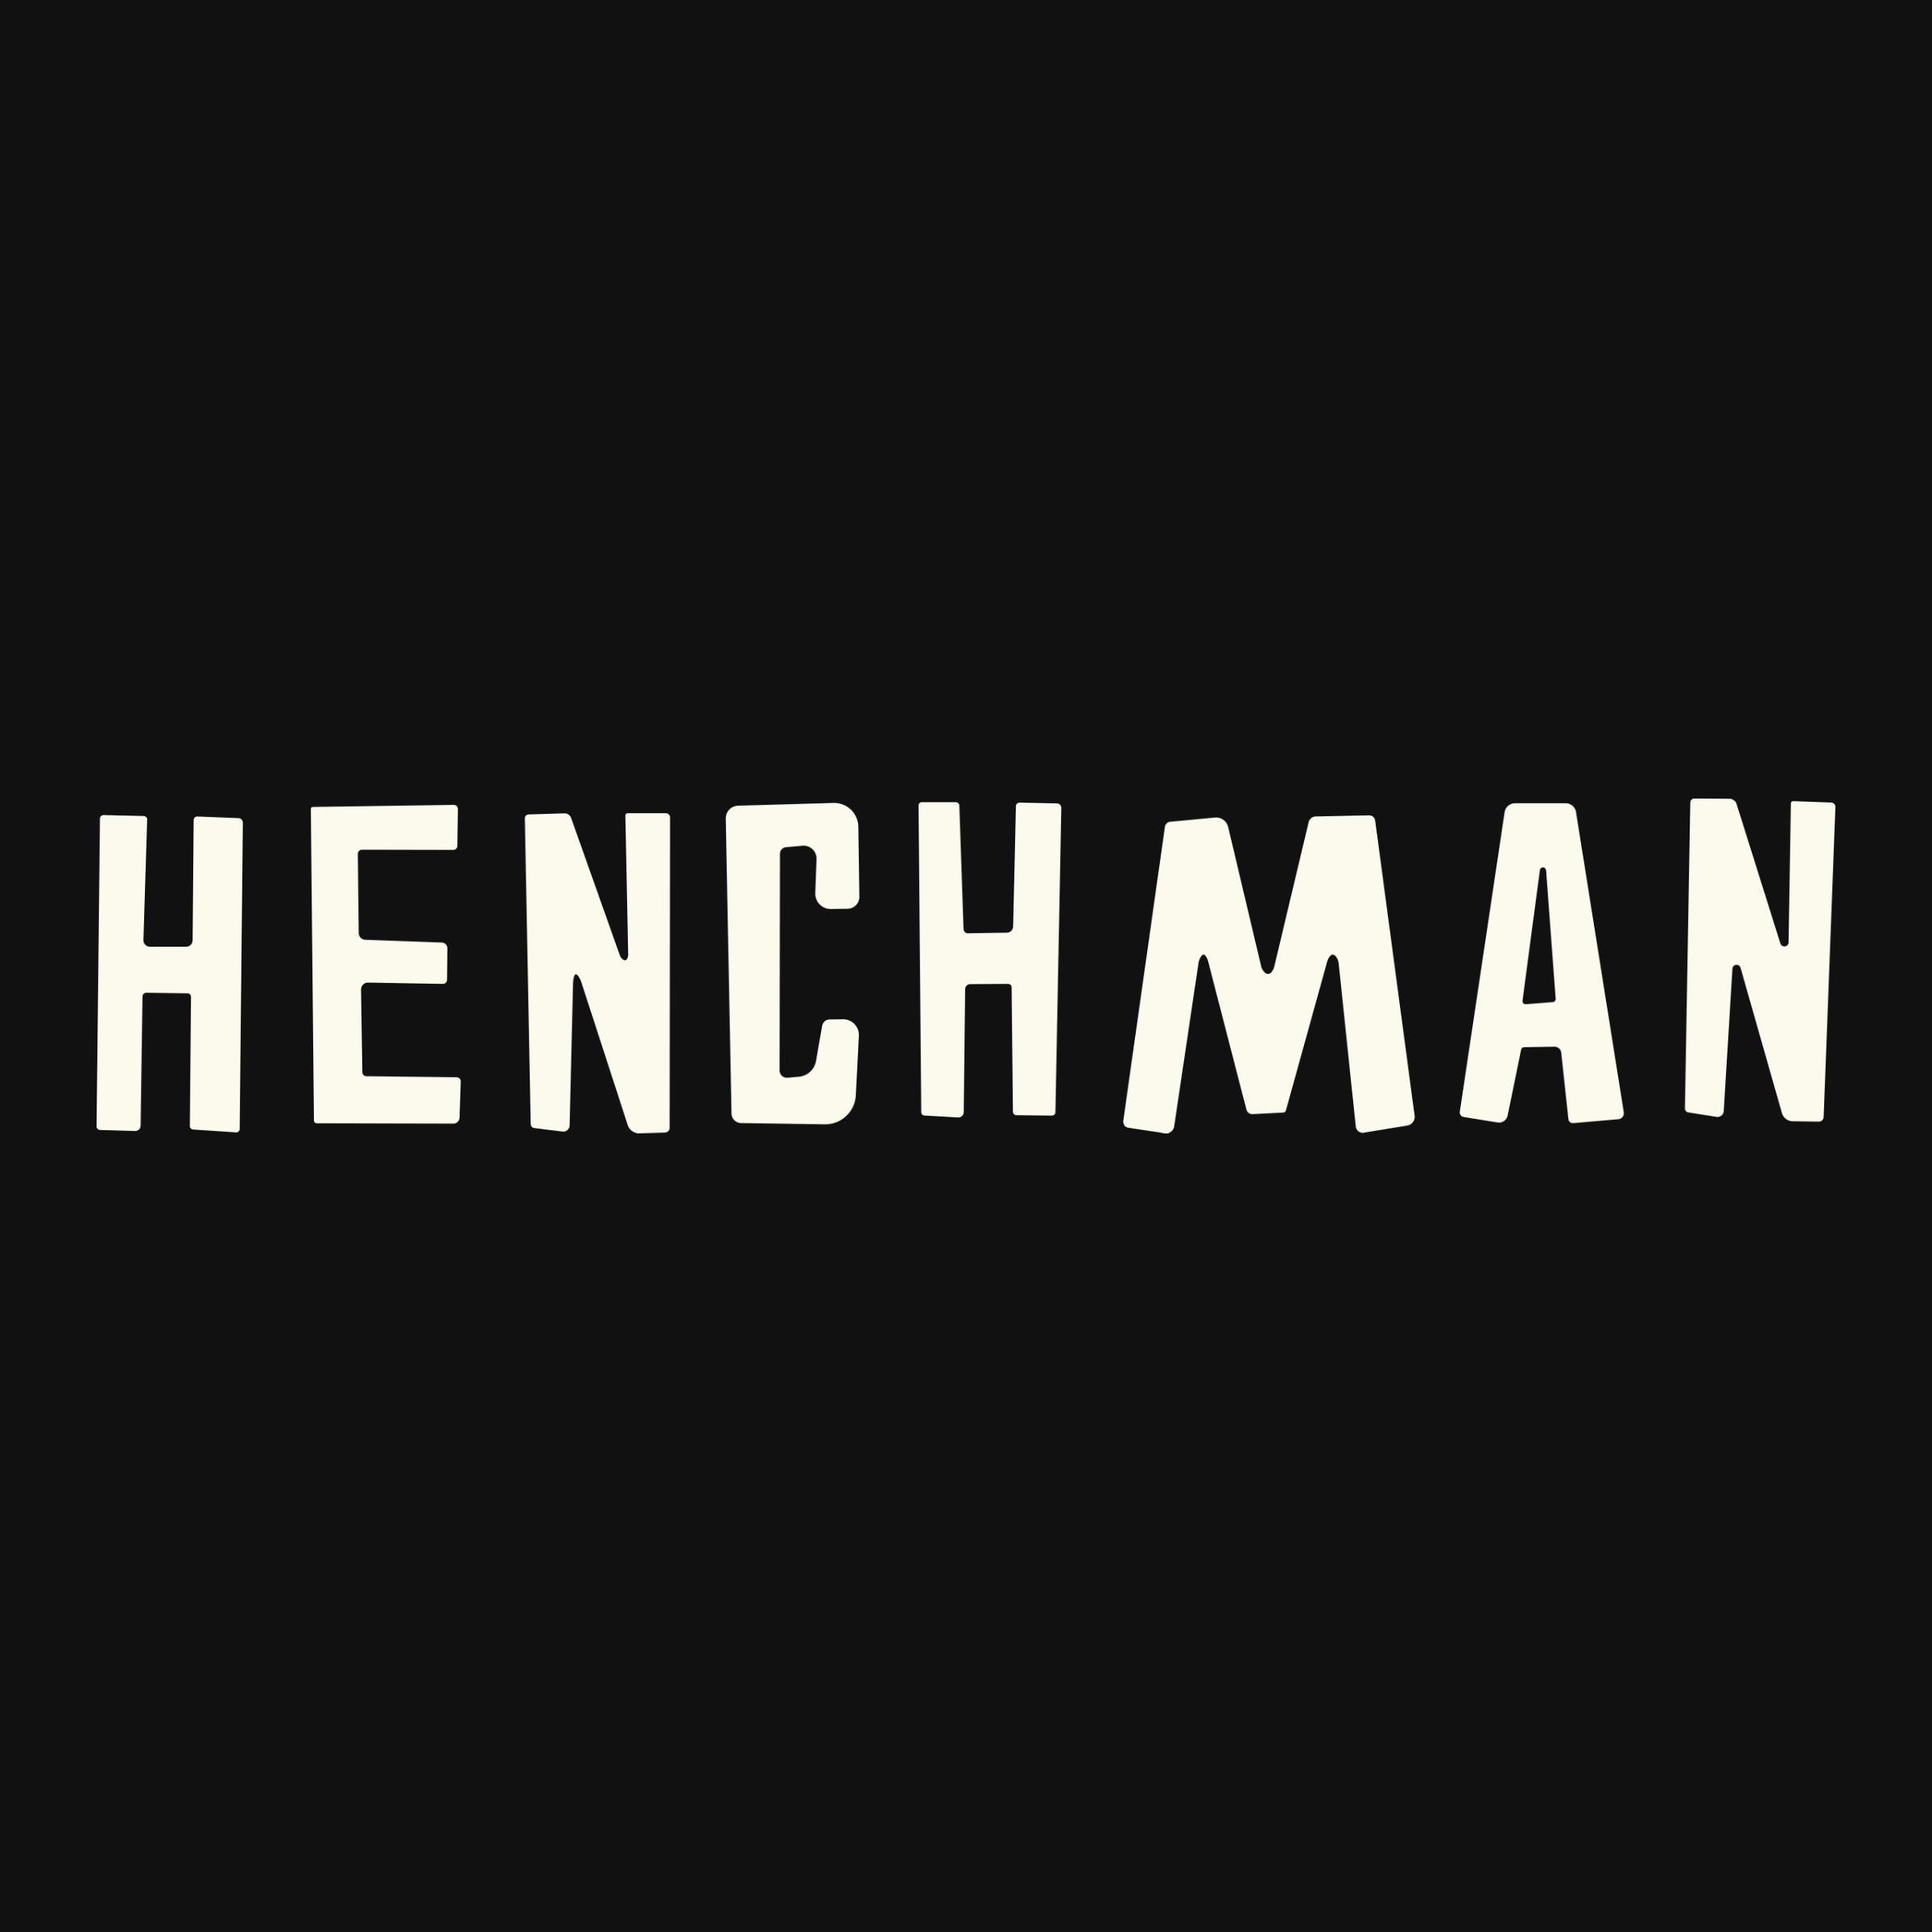 Cotton Bureau: HENCHMAN